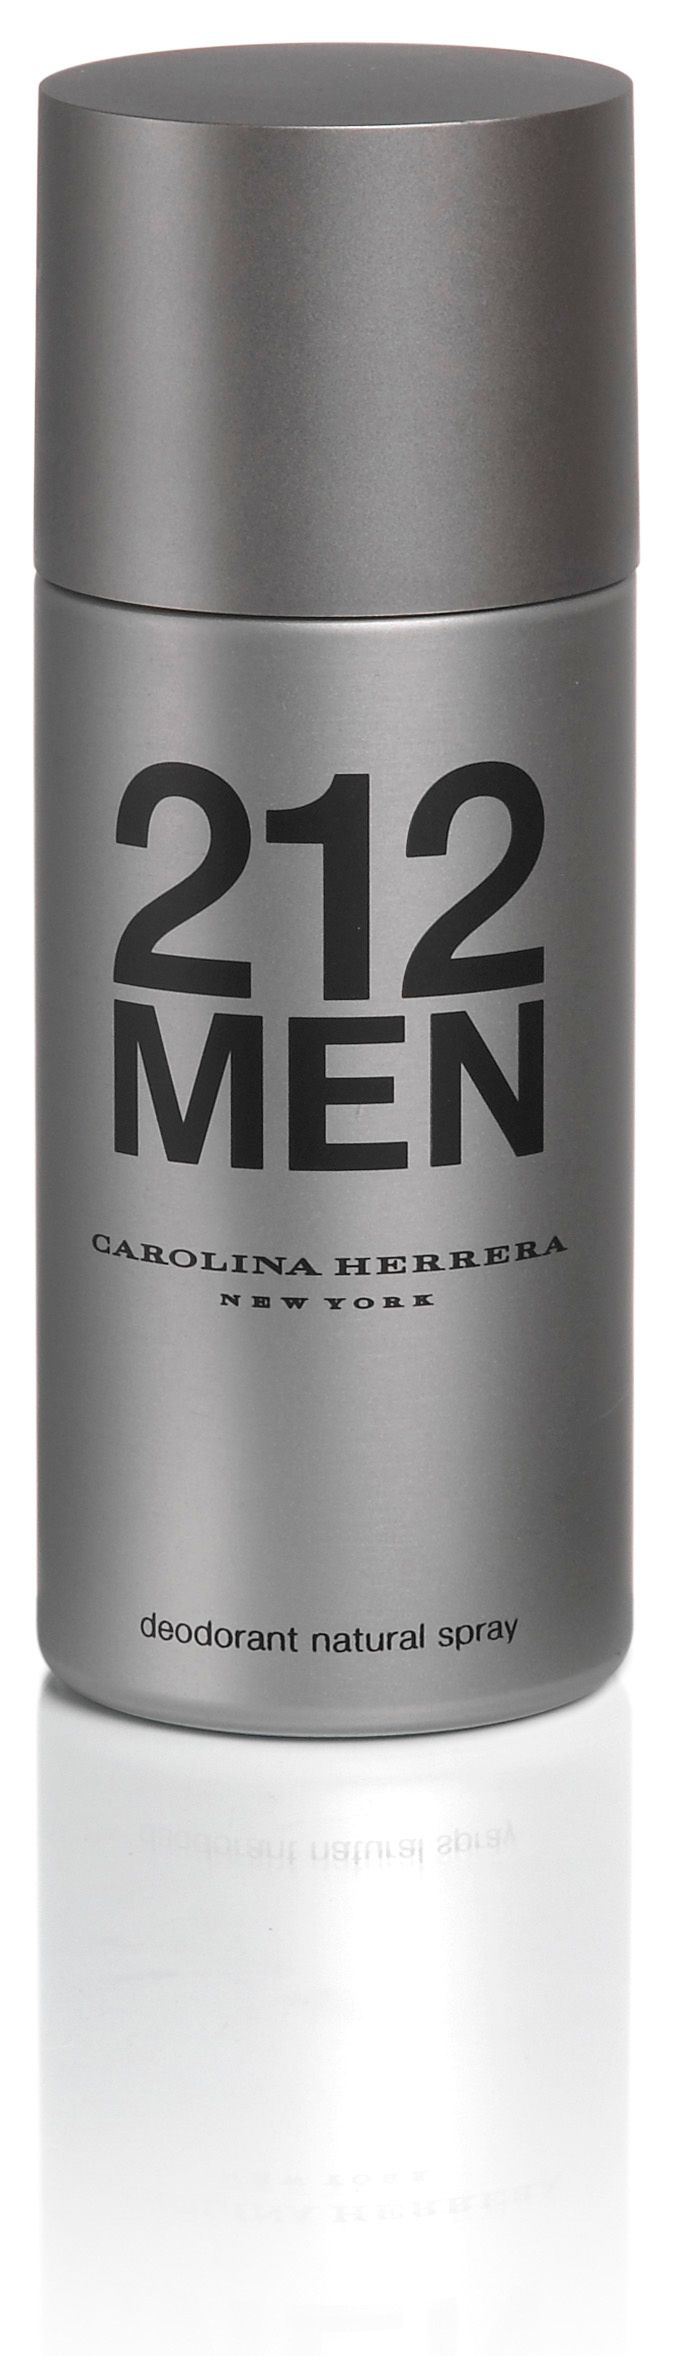 Carolina Herrera 150ml 212 mens deodorant product image